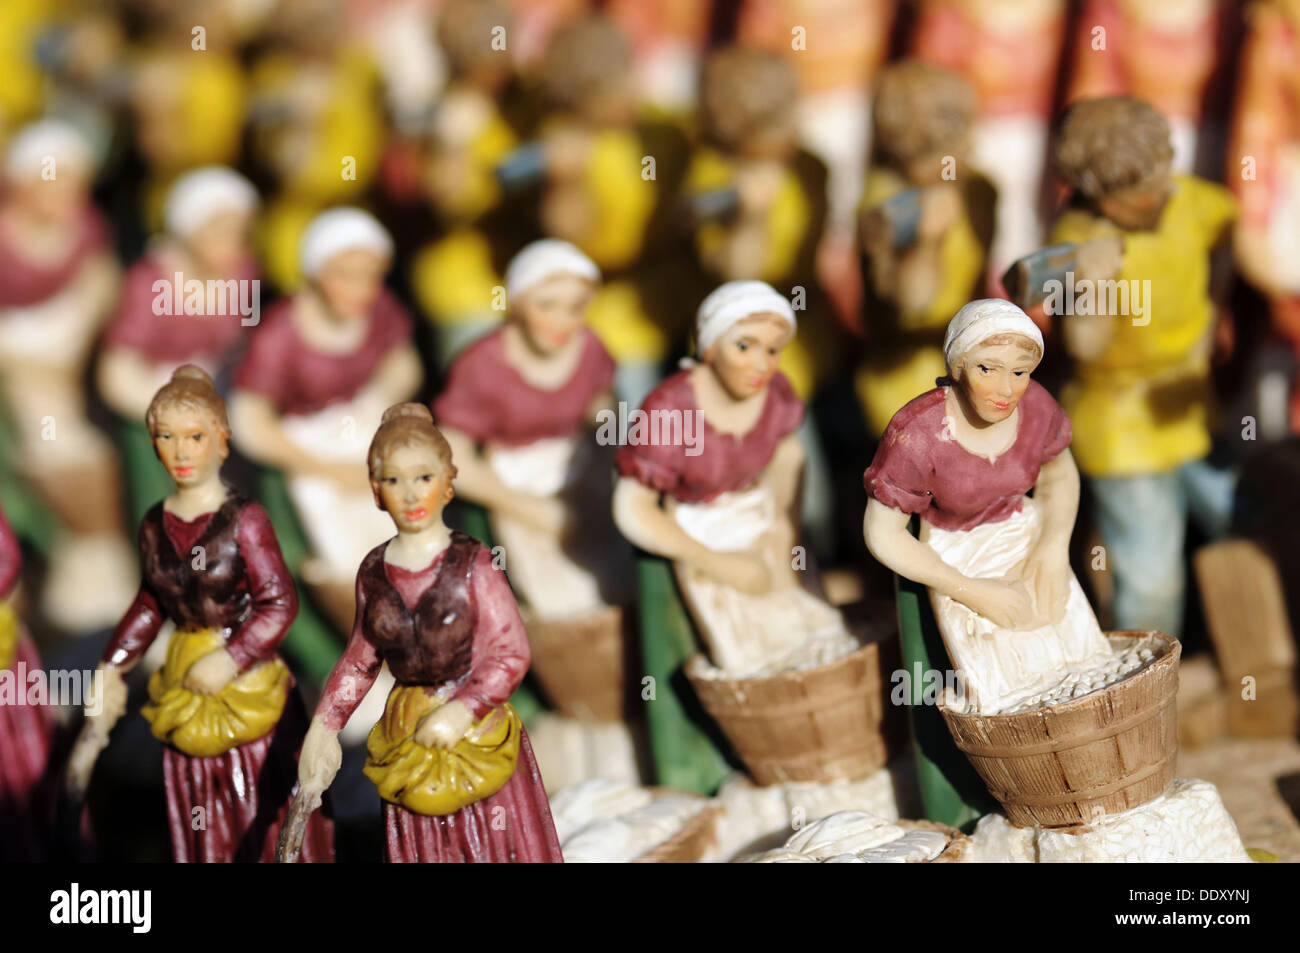 Used crib for sale in nj - Stock Photo Handmade Figures Used To Decorate Neapolitan Crib On Sale In A Shop Campania Italy